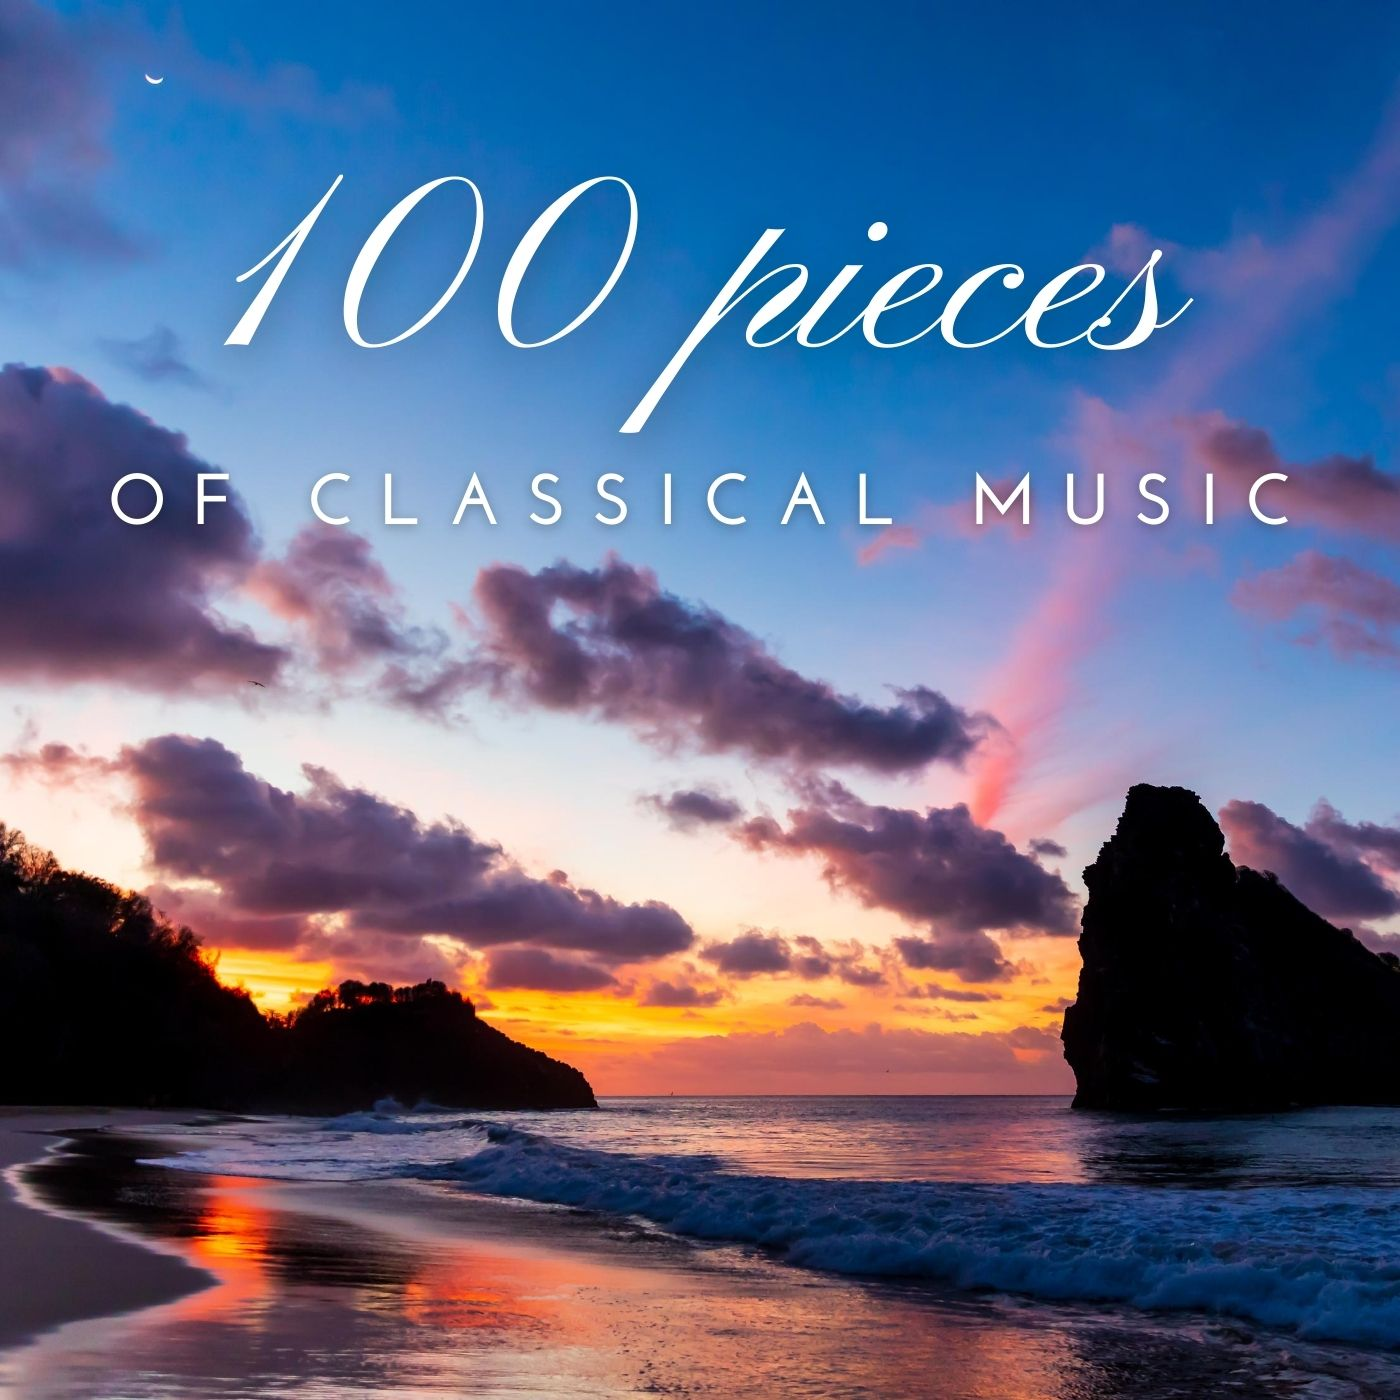 100 Pieces of Classical Music